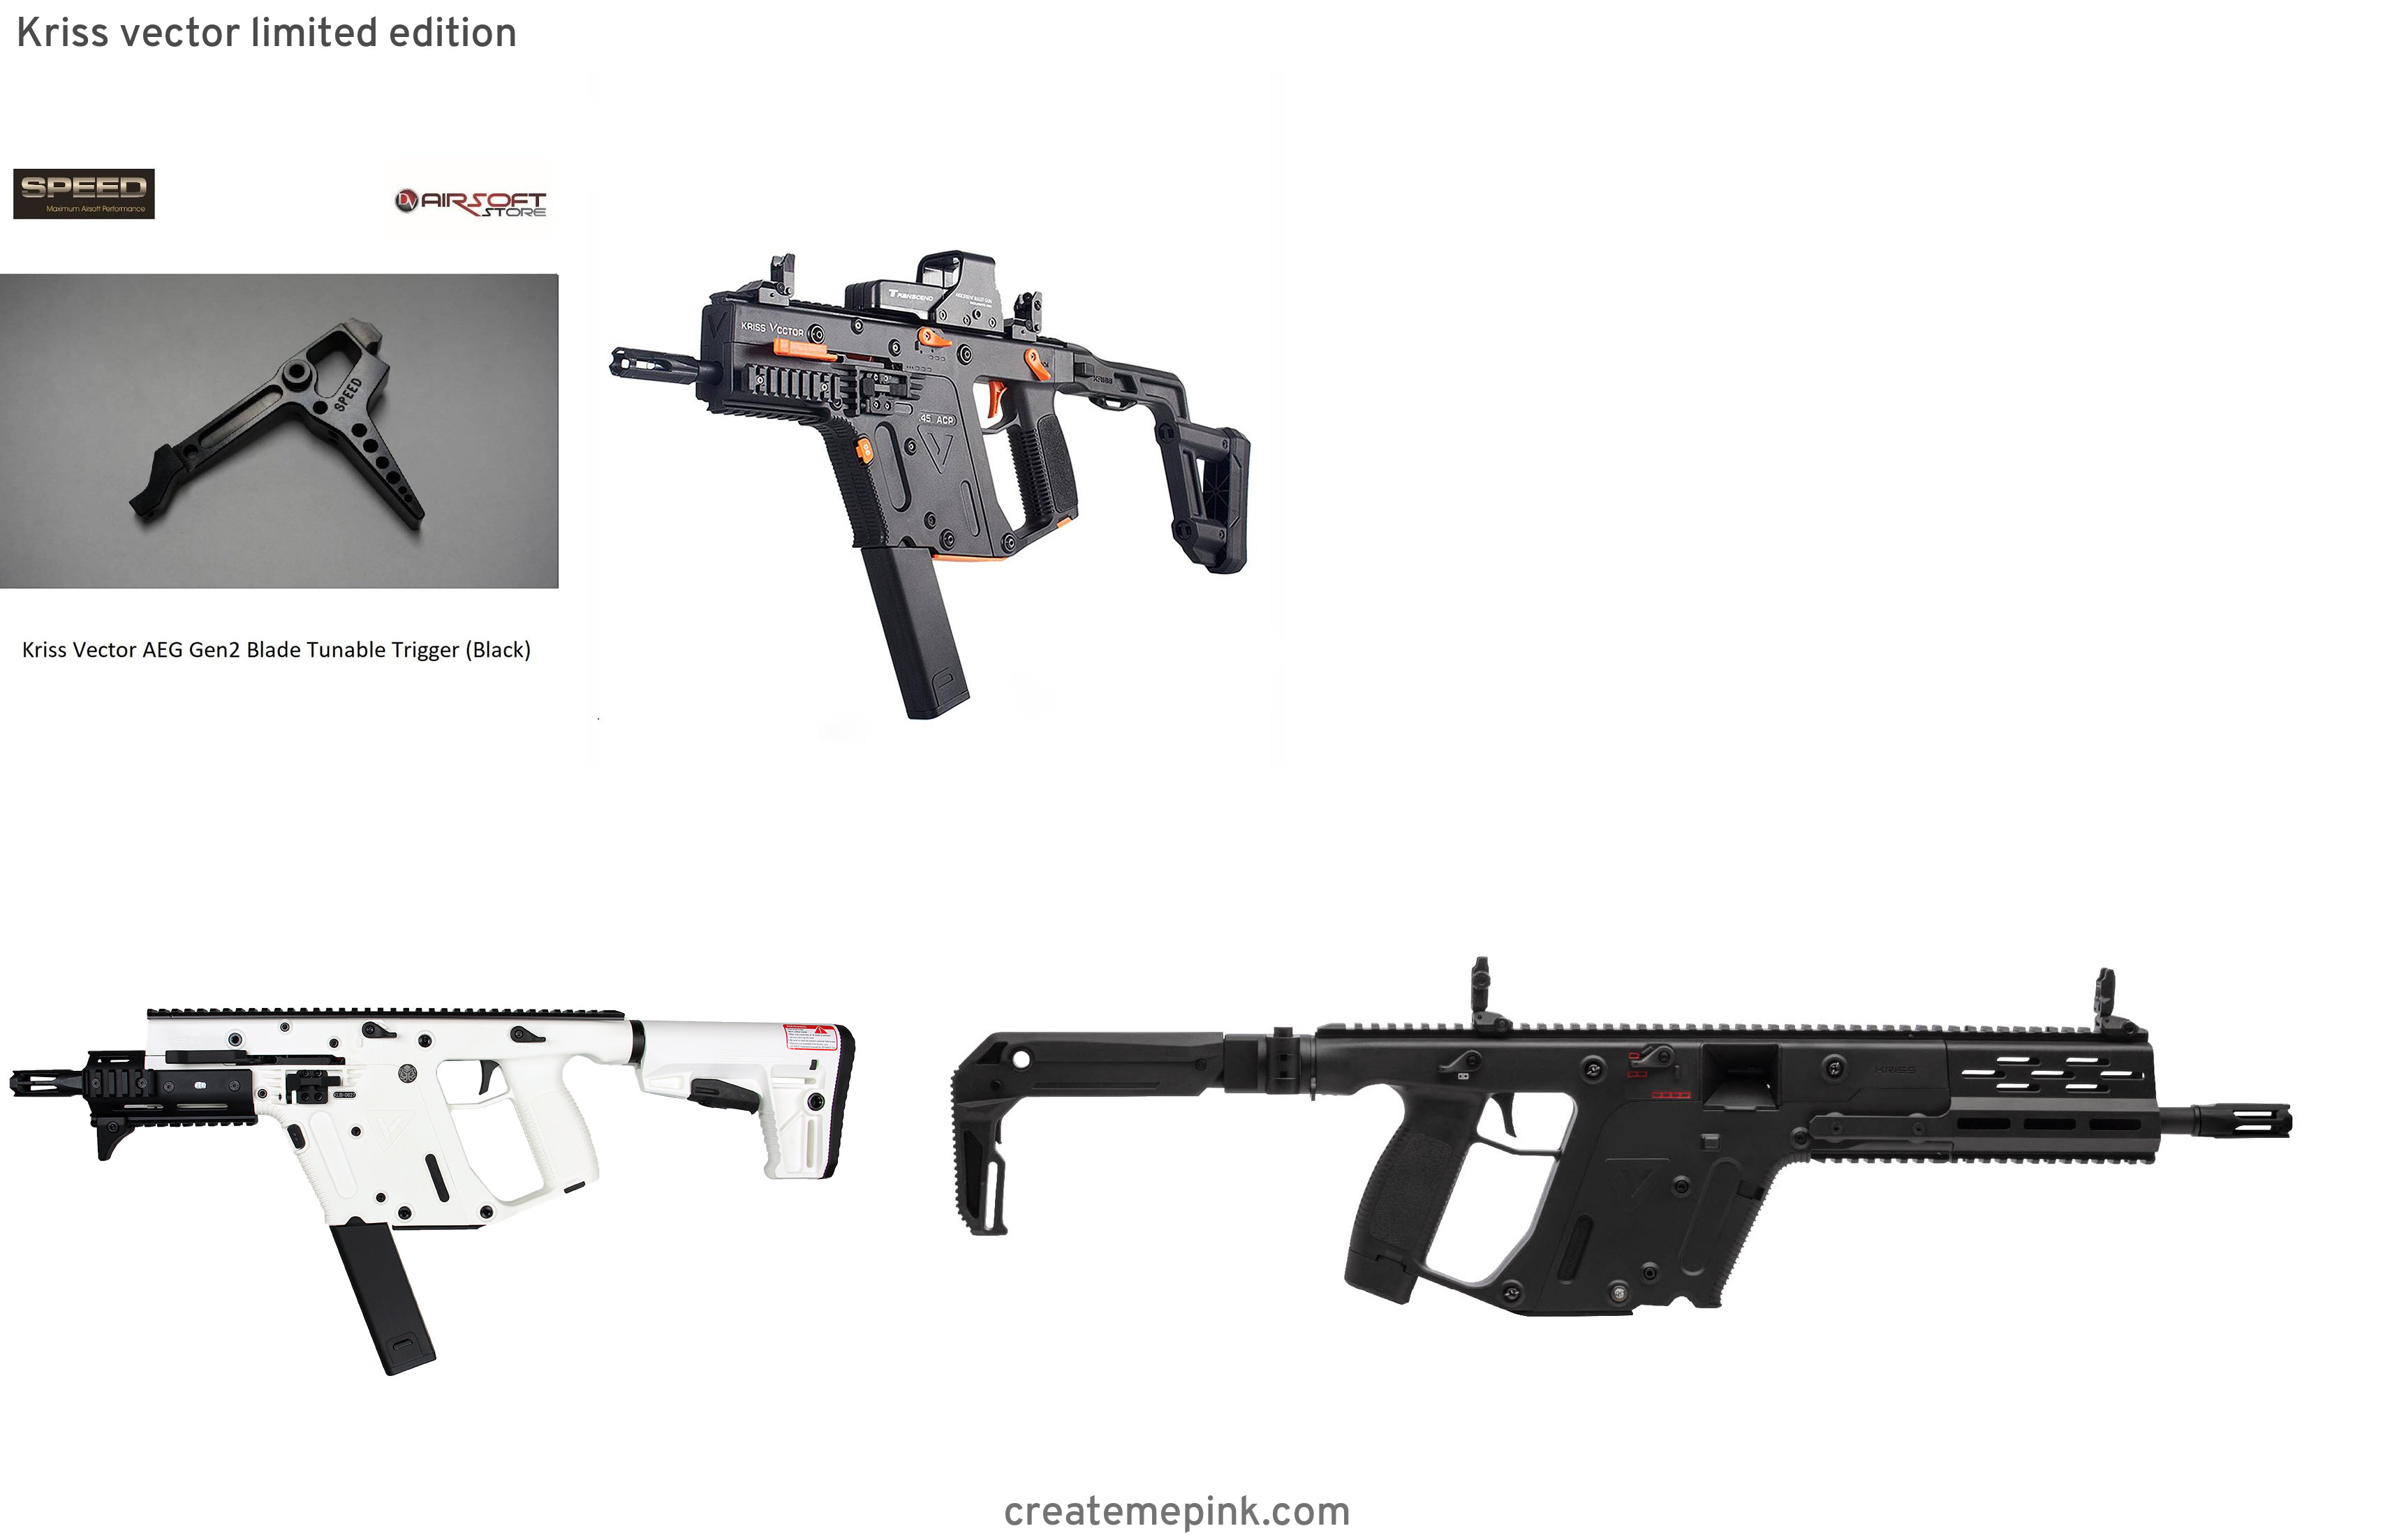 Kriss Vector Trigger Upgrade: Kriss Vector Limited Edition